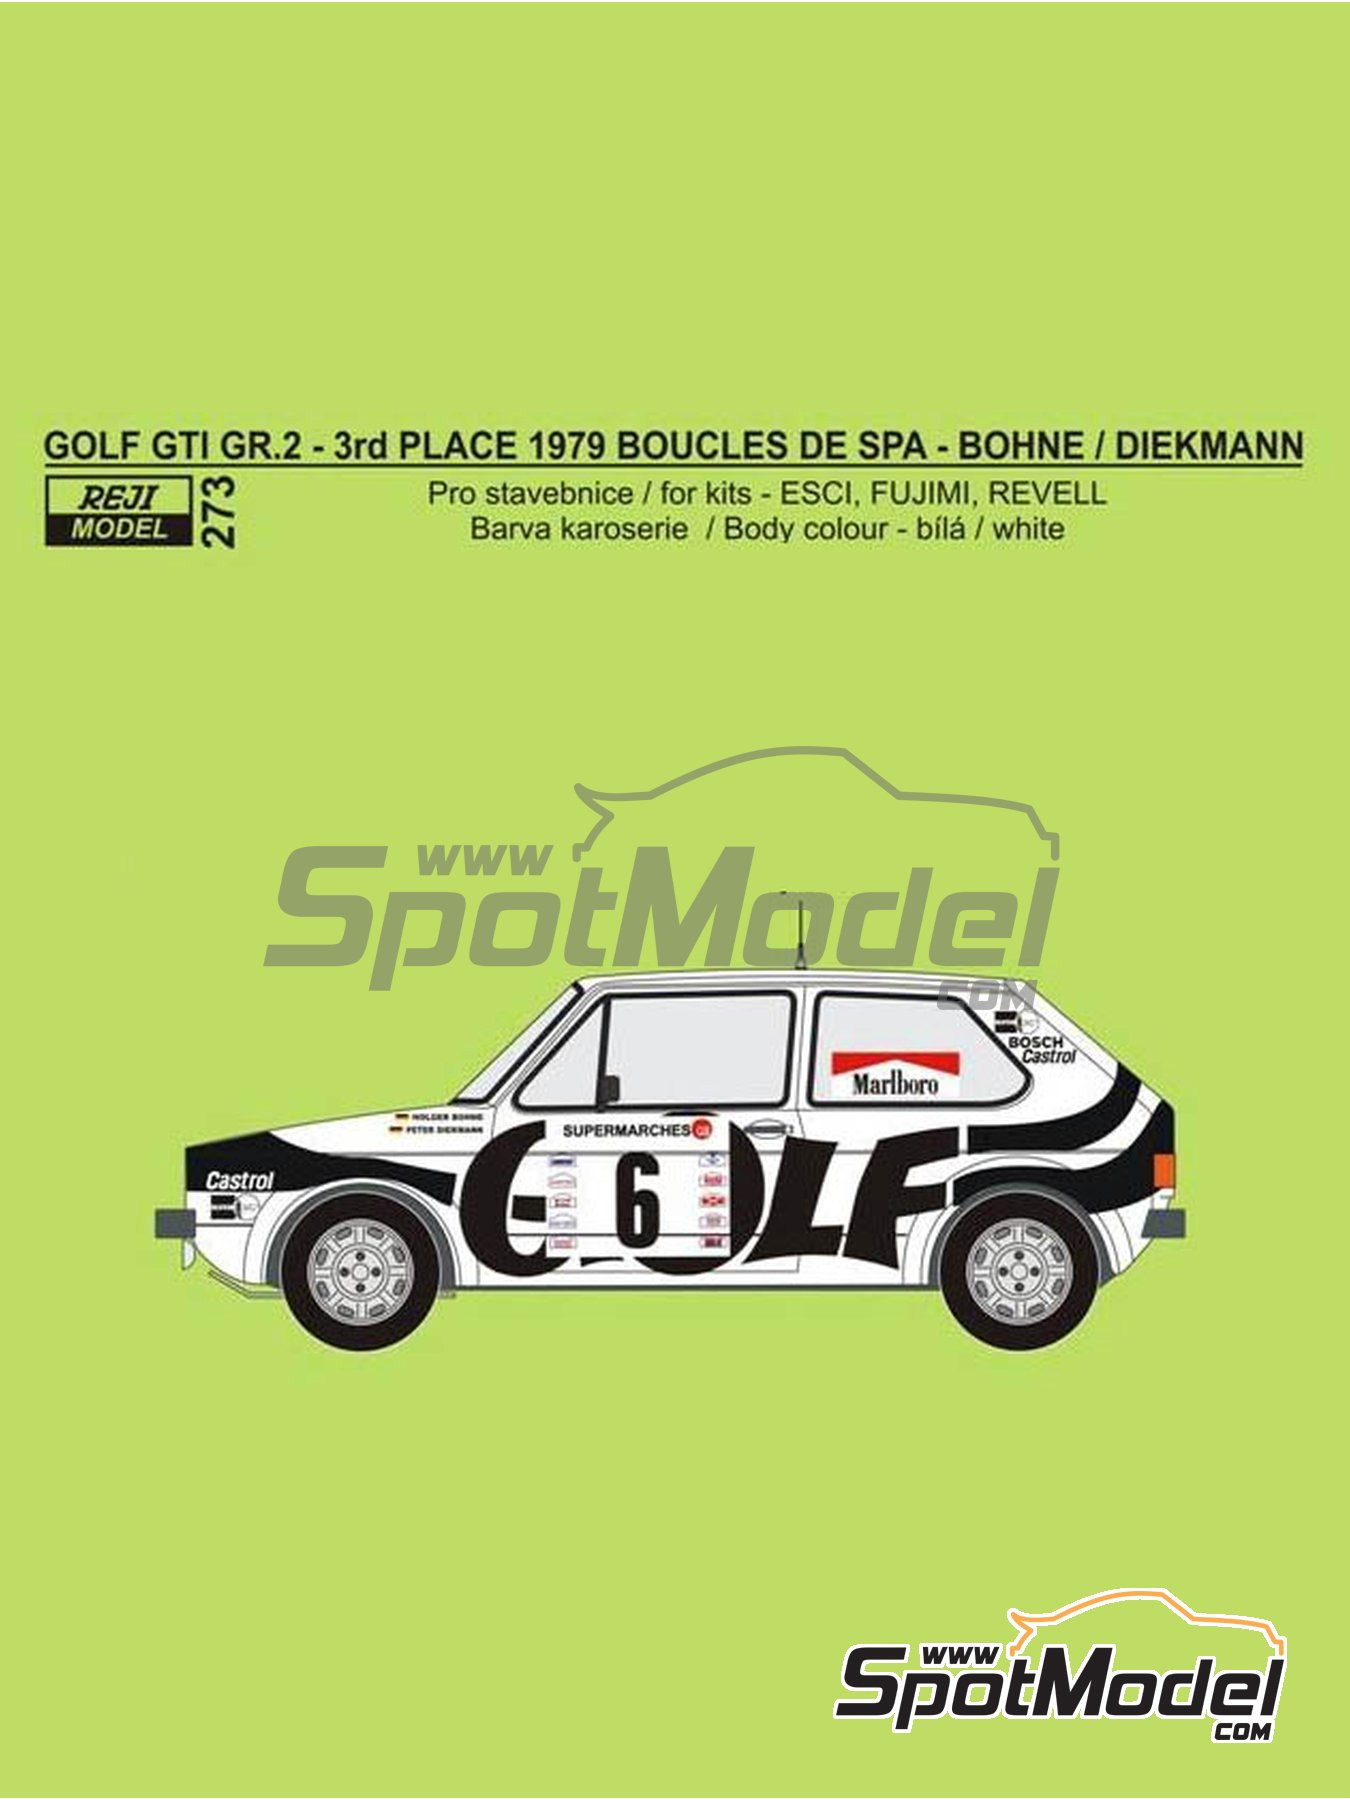 Volkswagen Golf GTI Mk I Group 2 Marlboro - Boucles de SPA 1979 | Marking / livery in 1/24 scale manufactured by Reji Model (ref. REJI-273) image